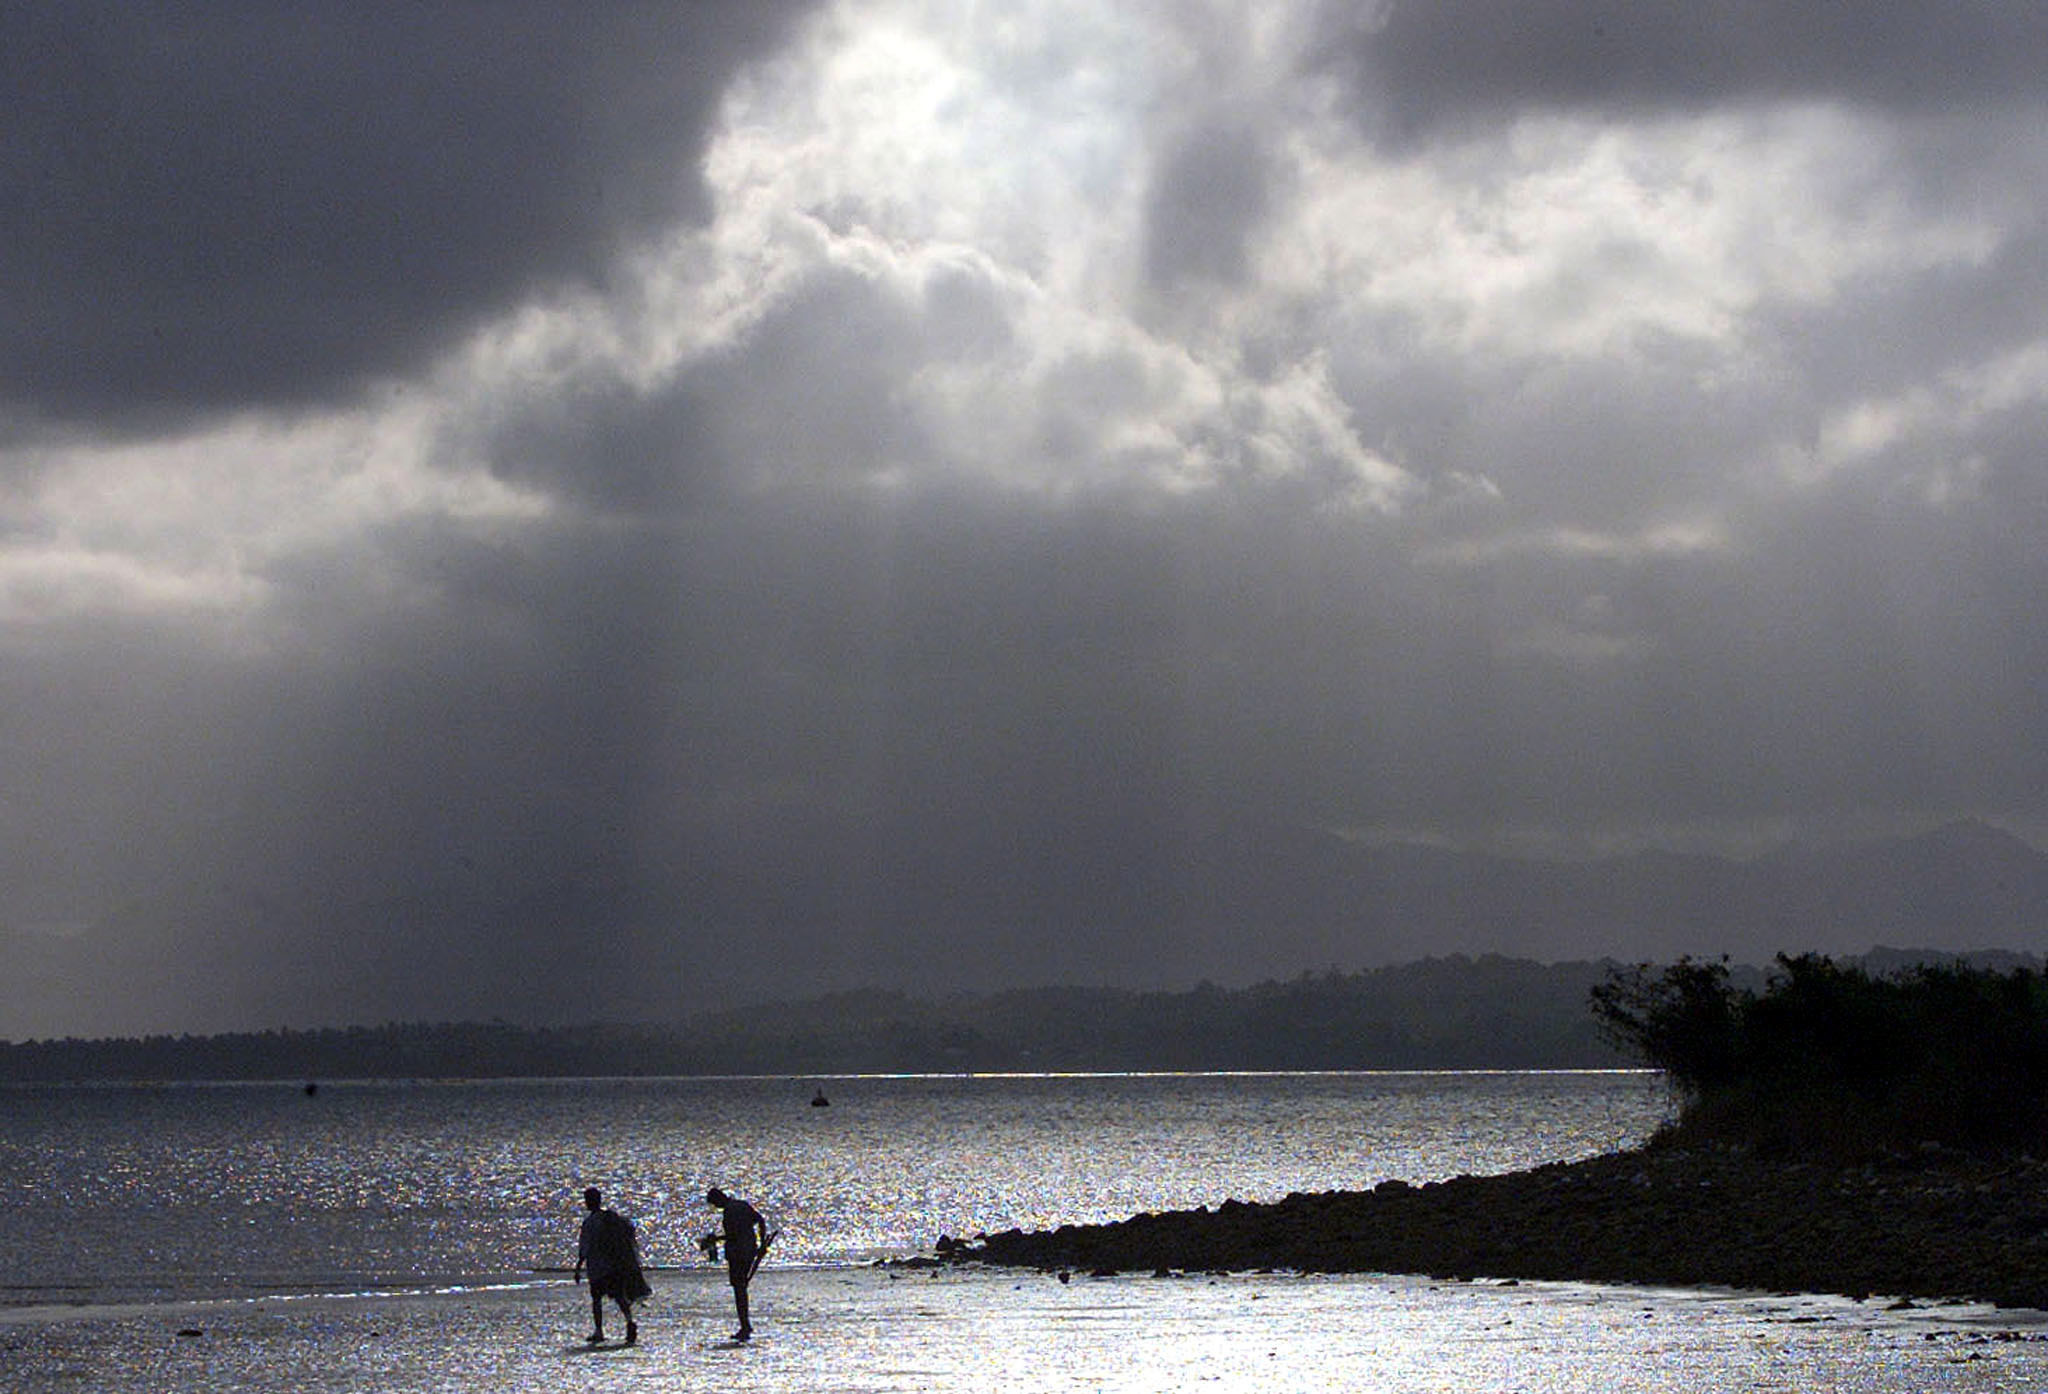 An afternoon storm looms above fishermen on the mud flats of a Suva beach September 9, 2001. [Fiji's general election has ended after a week of polling with caretaker Prime Minister Laisenia Qarase expected to approach Fiji's president form a majority coalition government after negotiations with minor parties on September 10, 2001.] - RTXKQTG